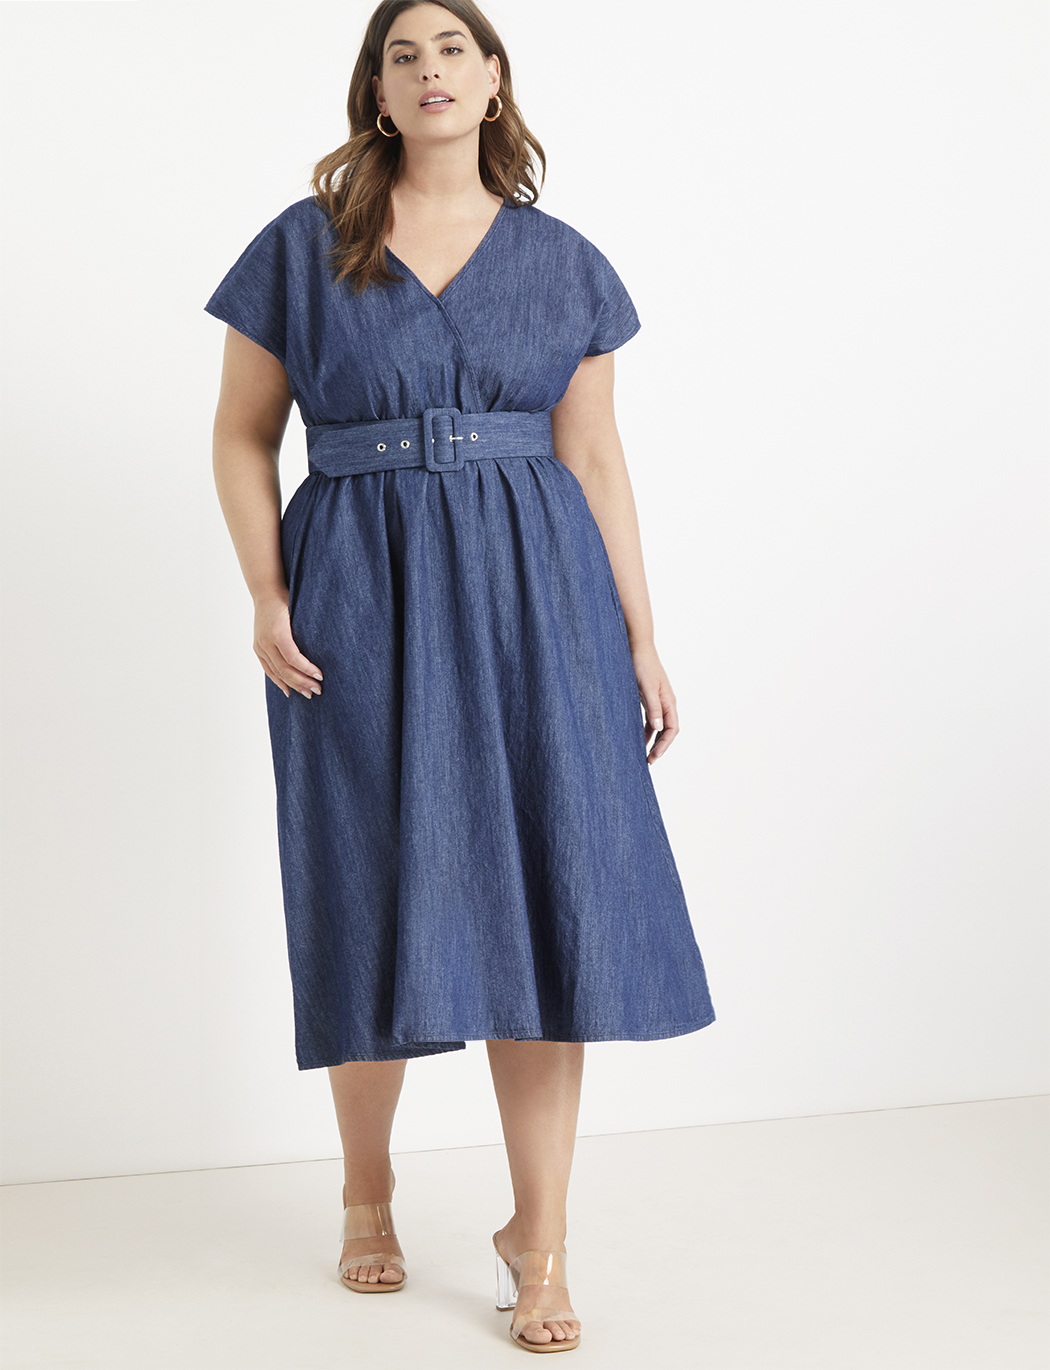 Chambray Midi Dress | Women\'s Plus Size Dresses | ELOQUII